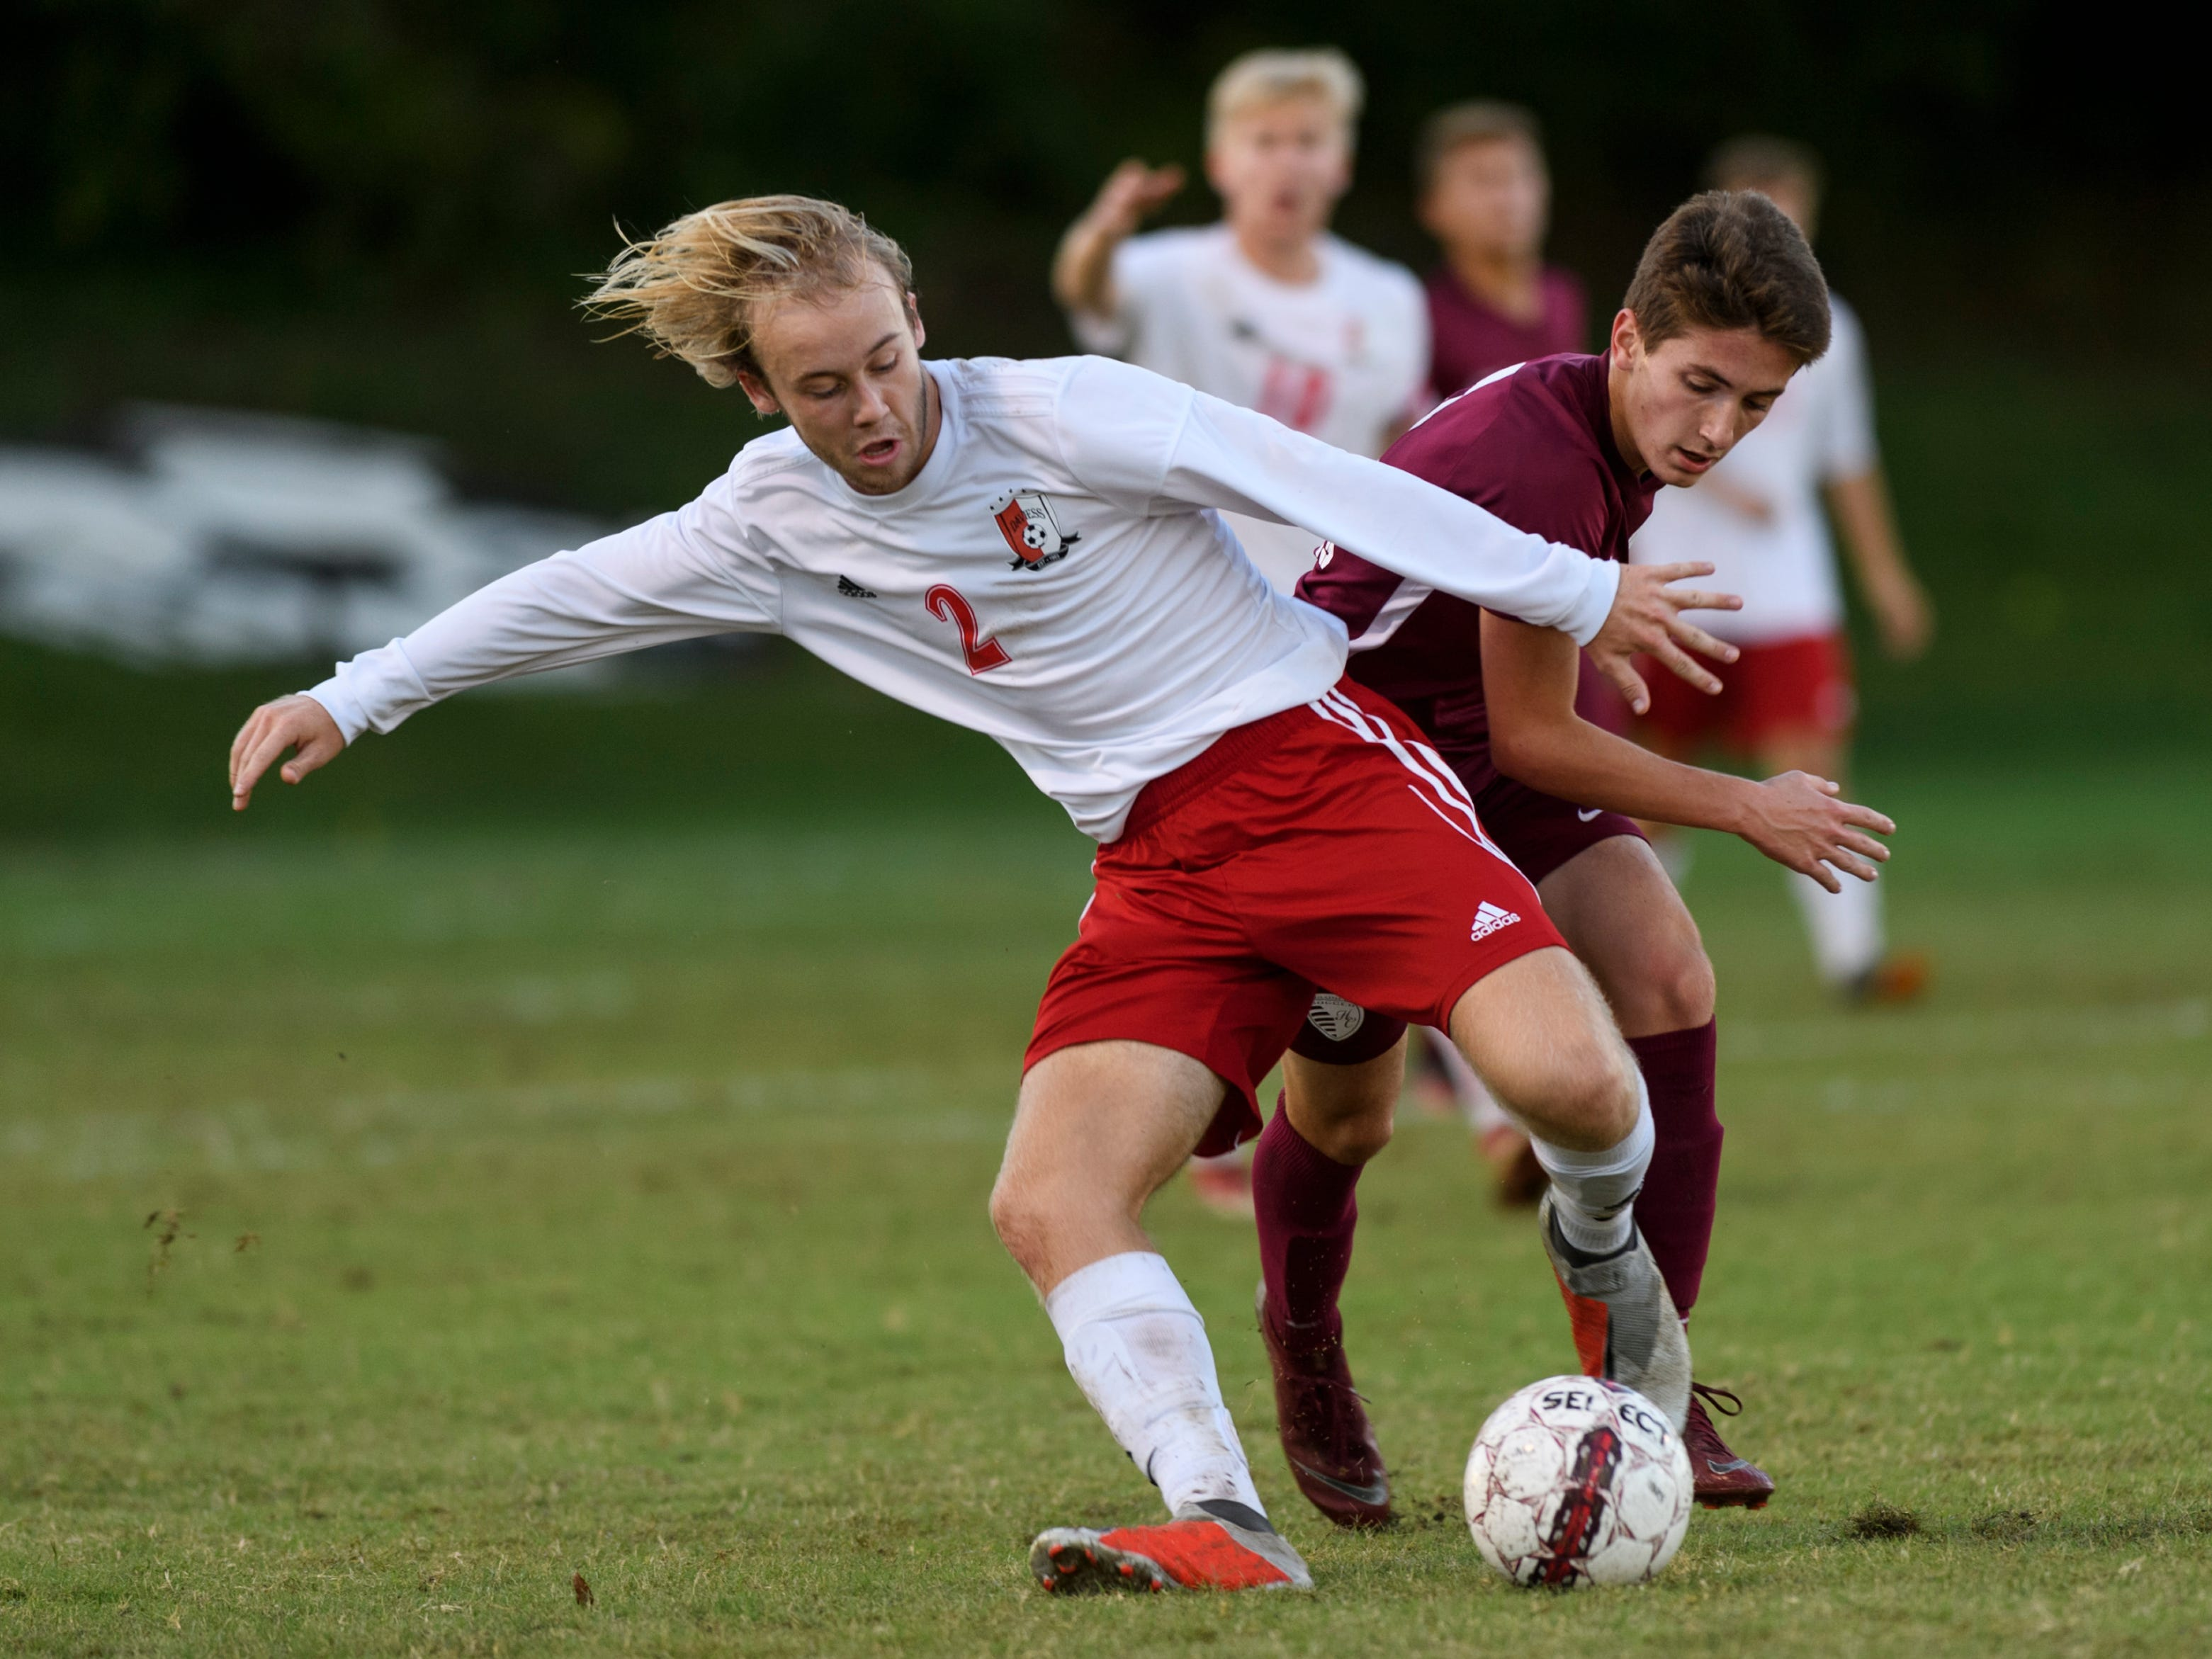 Daviess County's Hunter Clark (2) keeps the ball from Henderson County's Samuel Cloutier (2) at Colonel Field in Henderson, Ky., Thursday, Sept. 27, 2018. The Panthers defeated the Colonels 5-3.